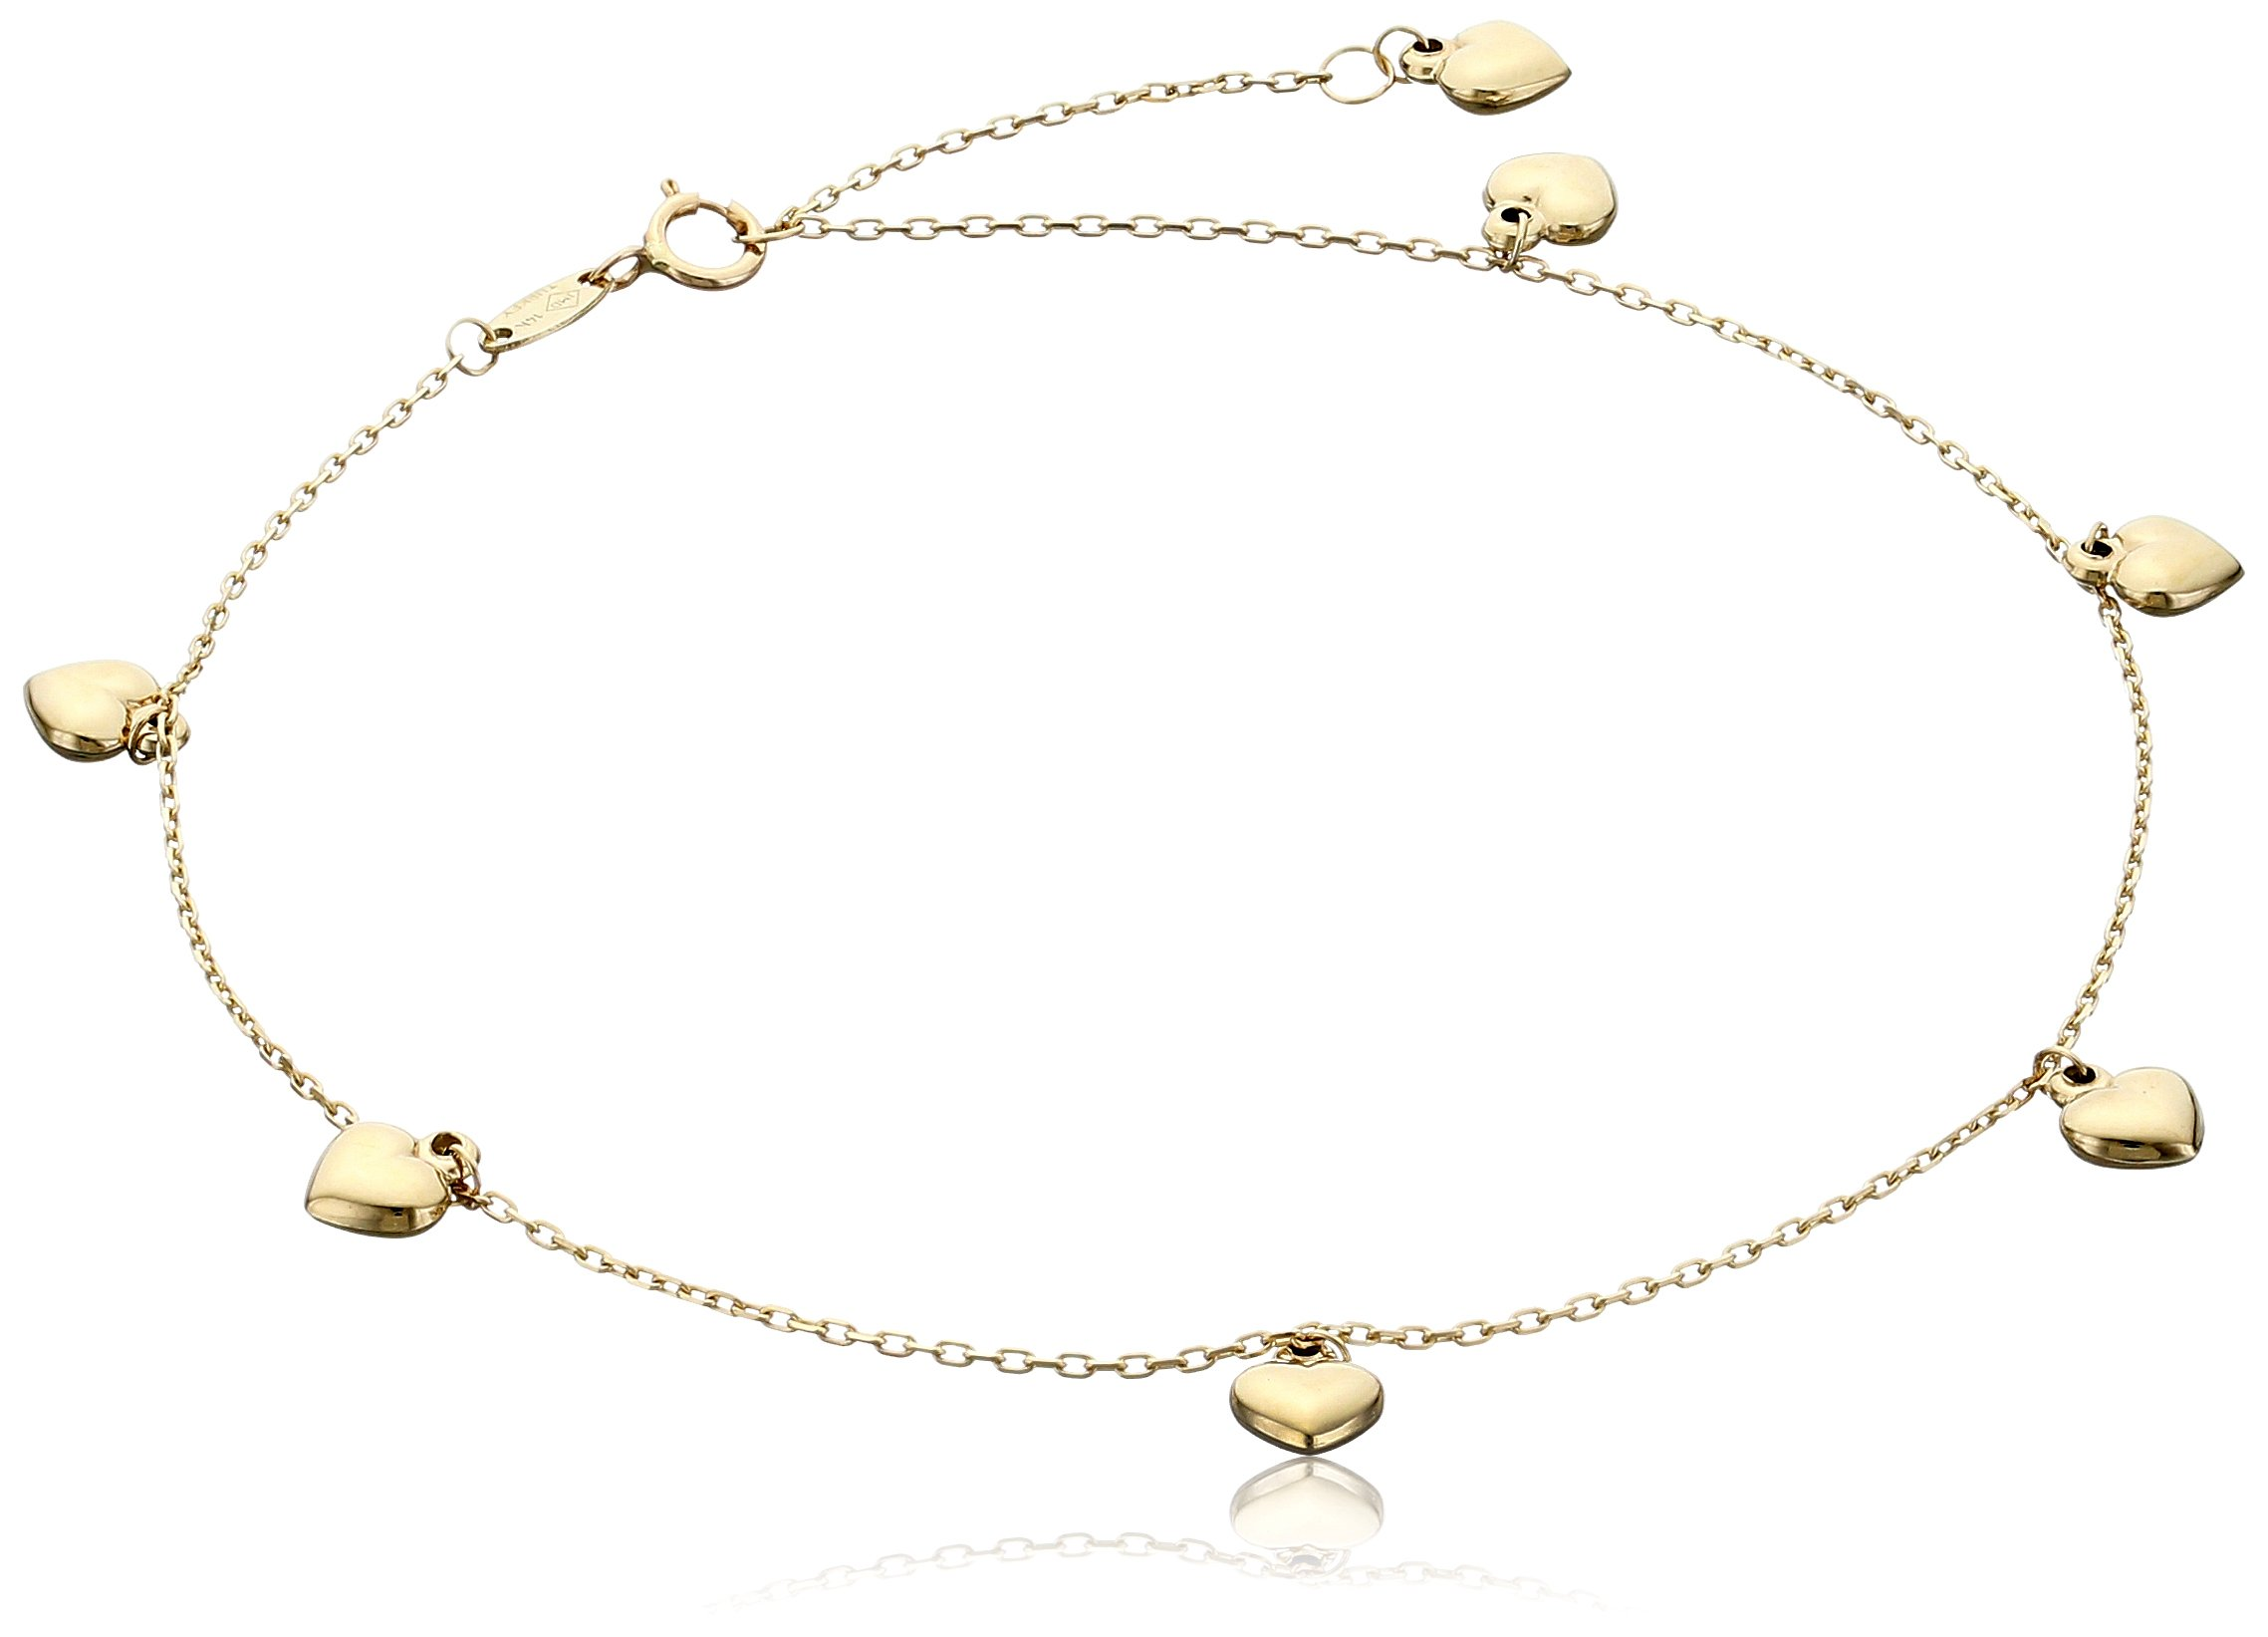 14k Yellow Gold Puffy Heart Charms Rolo Chain Adjustable Anklet, 9'' + 1'' Extender